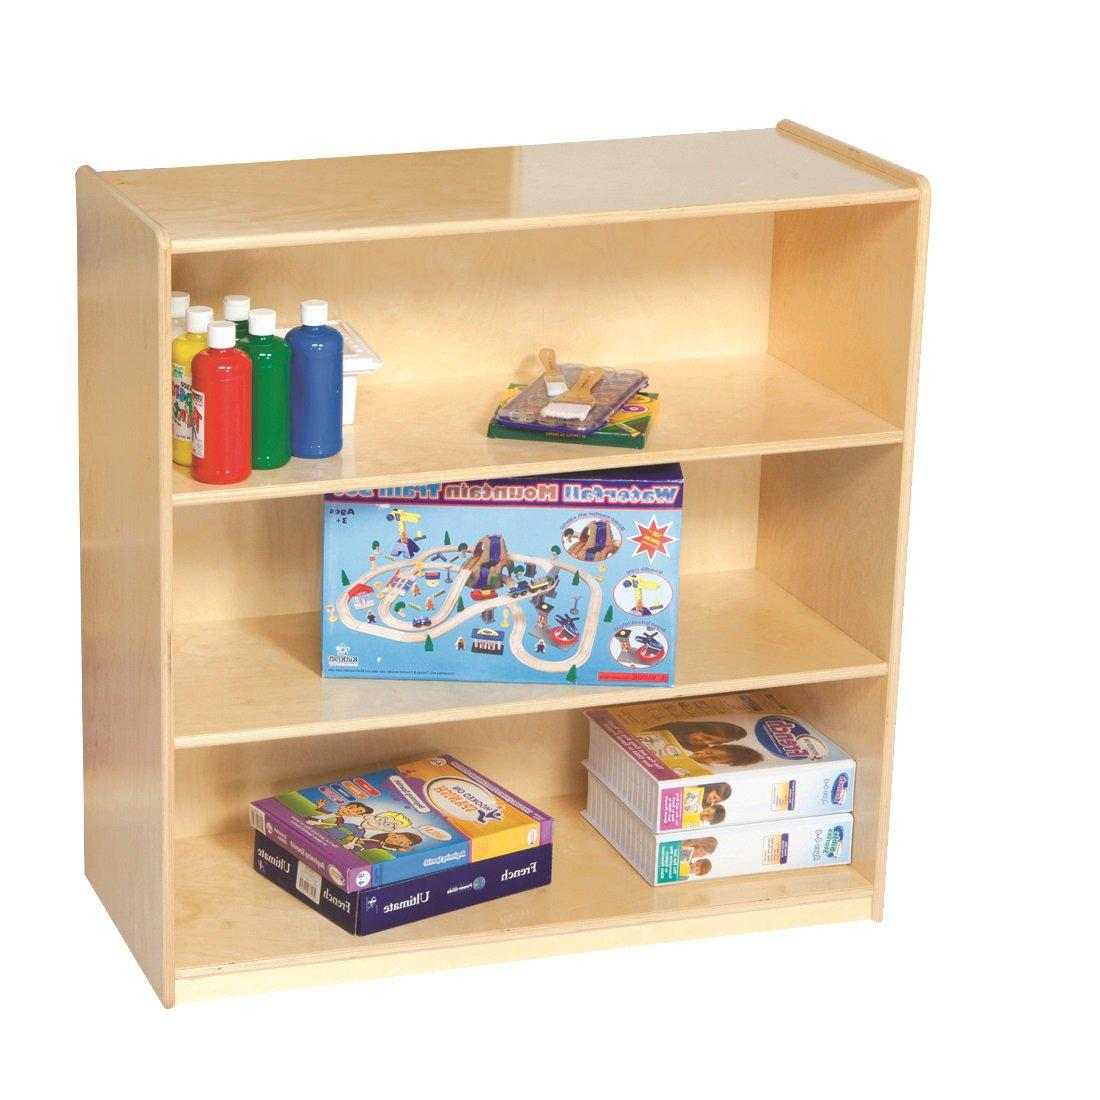 "Wood Designs Bookshelf, 36-3/4""H"